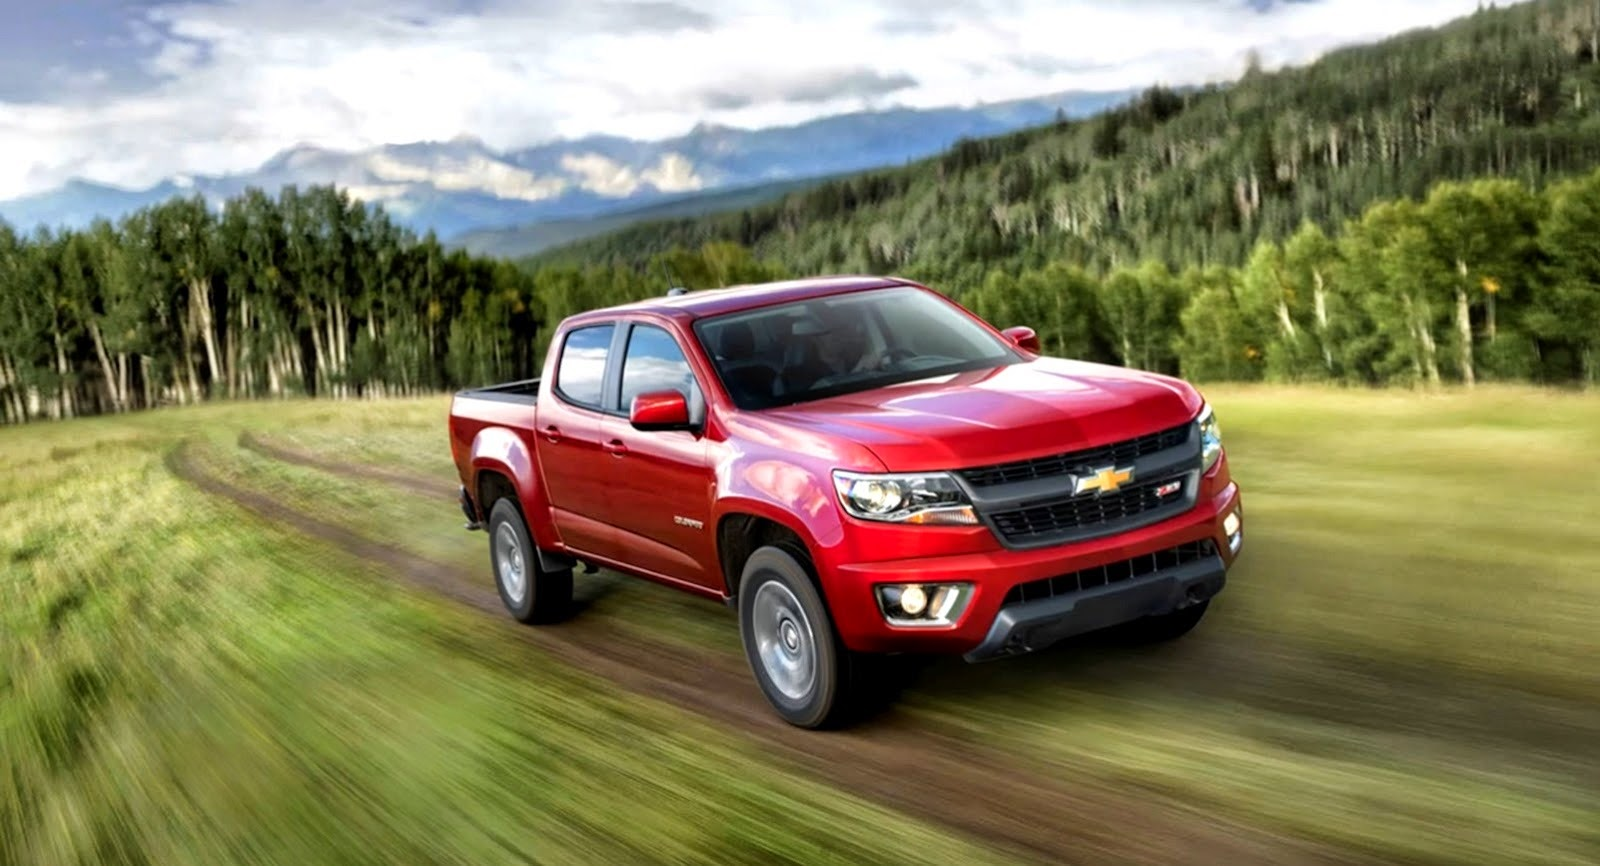 New 2015 chevy colorado designed for active lifestyles covert ford chevrolet hutto